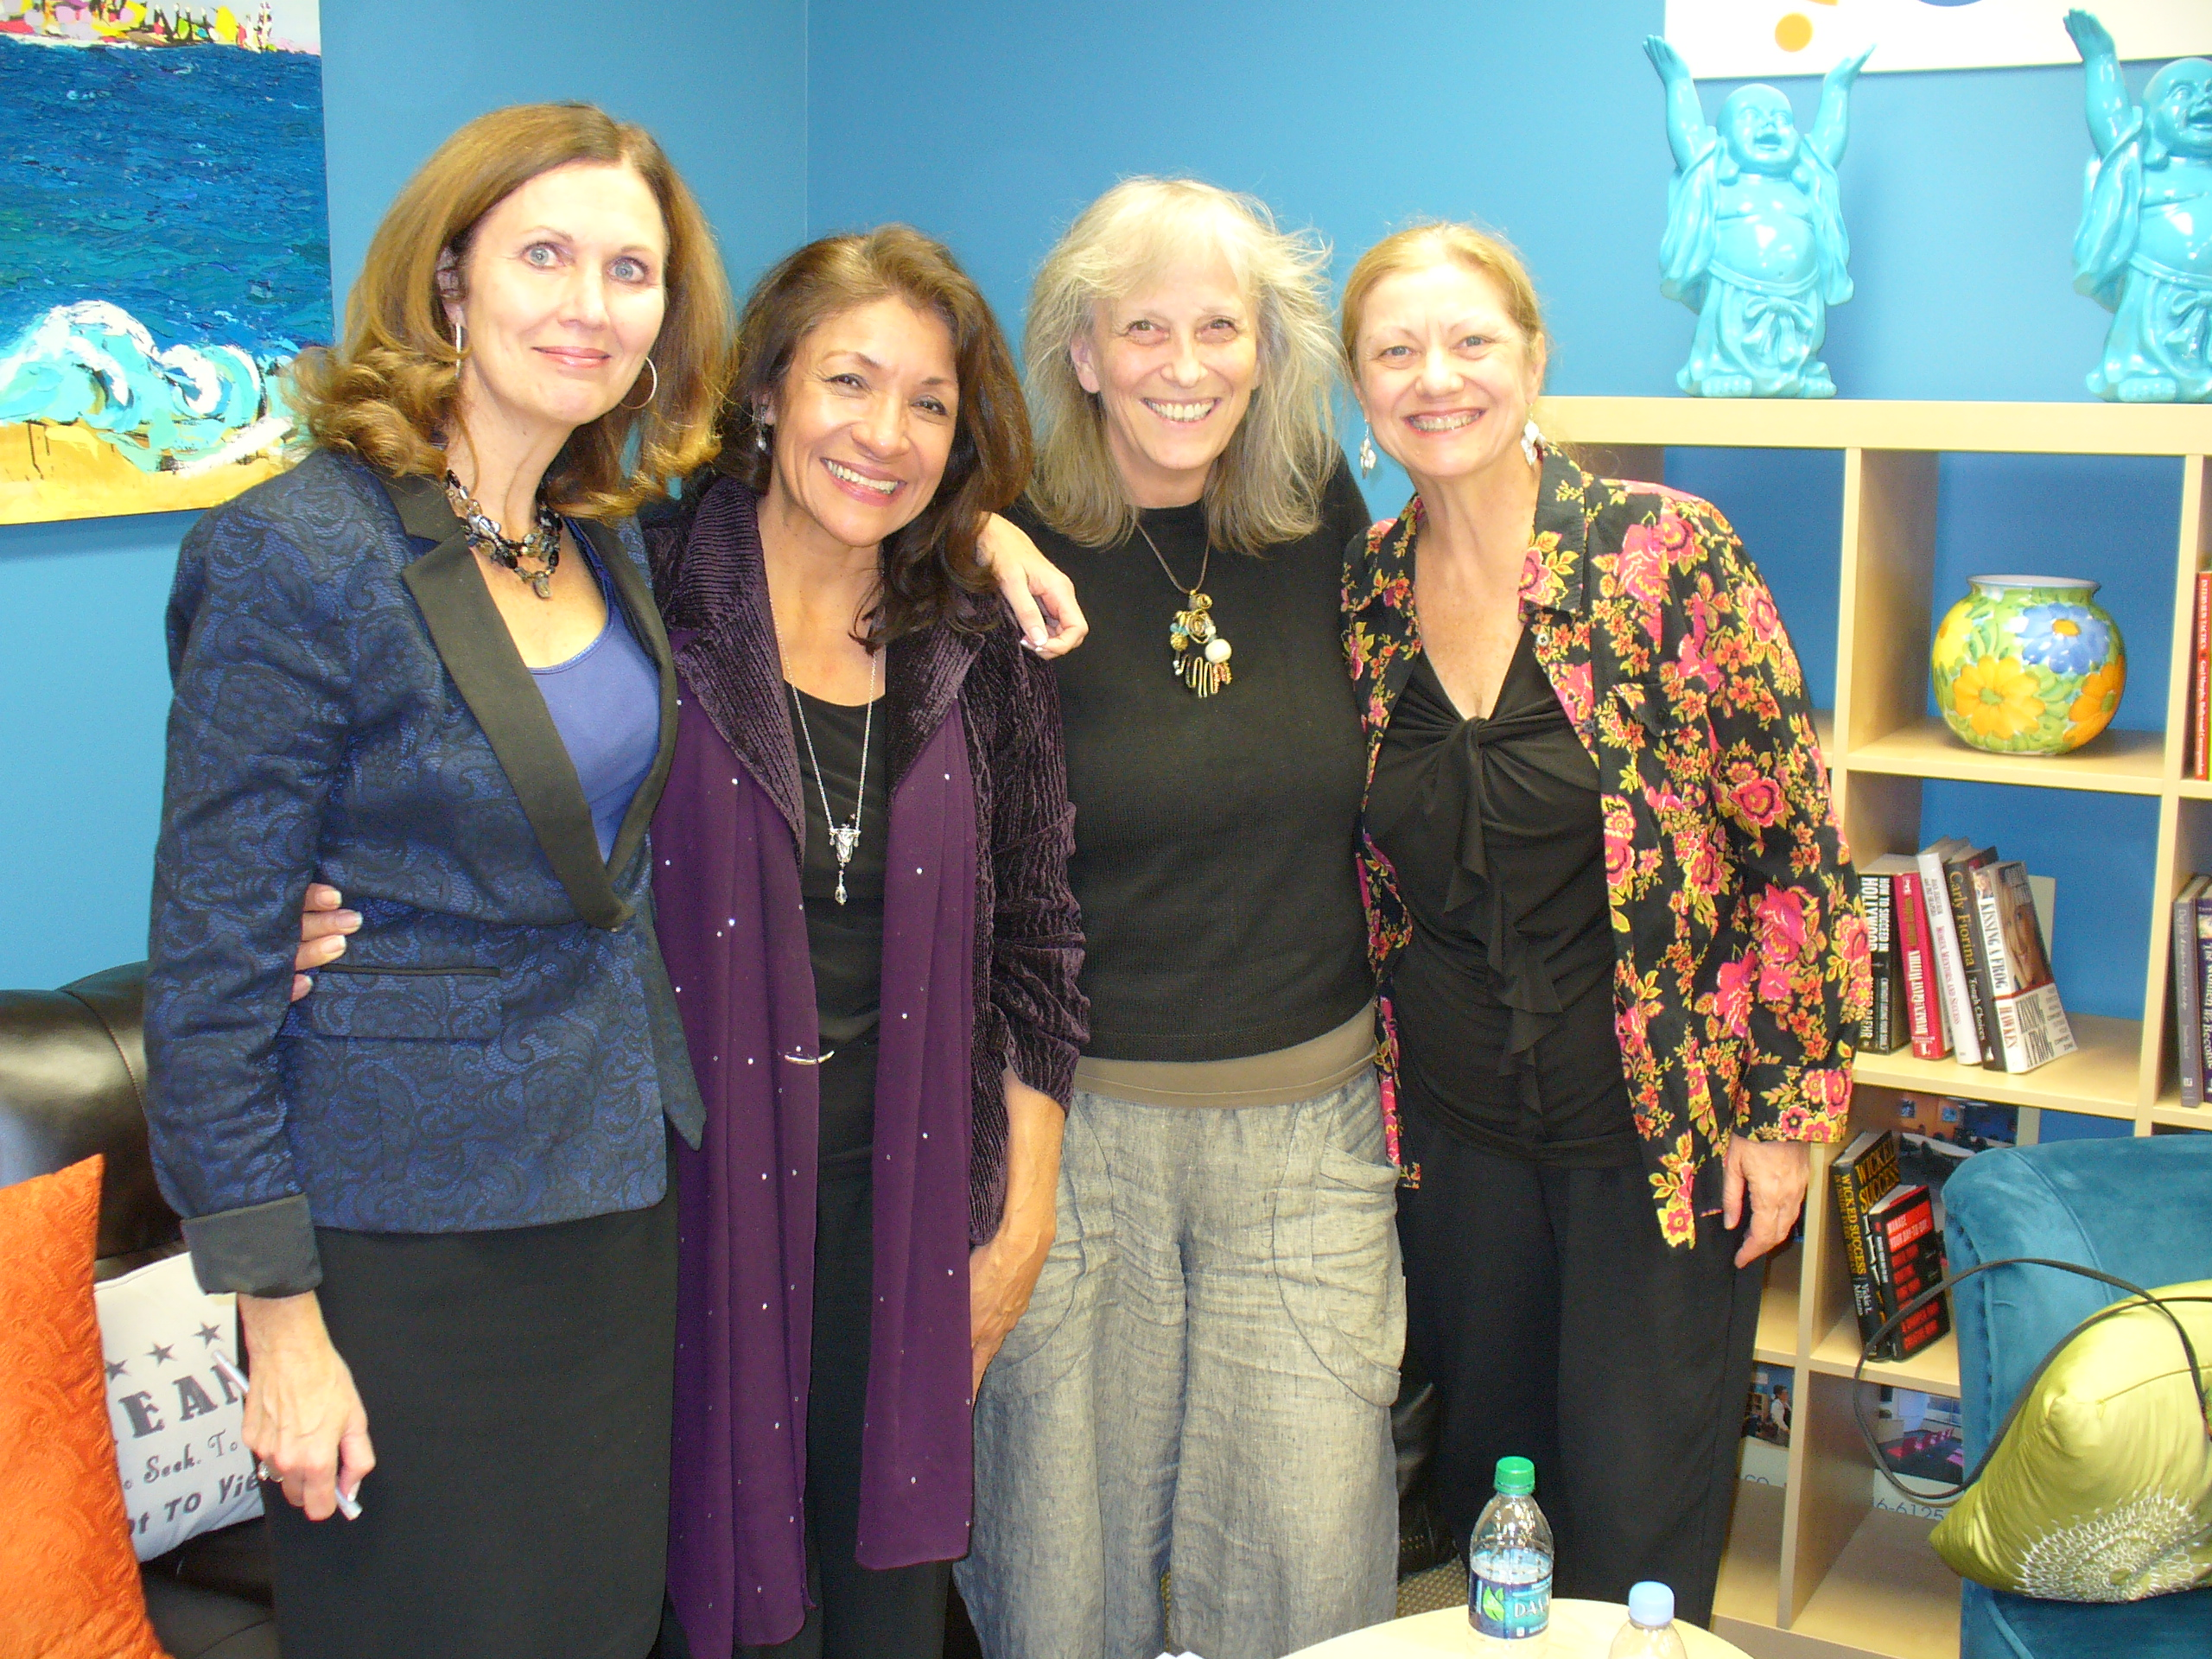 Speaking at Made in the Valley Networking event with (l to r) Libby Gill, Gail Lara, Karrie Ross and Robin Quinn Nov. 19, 2013